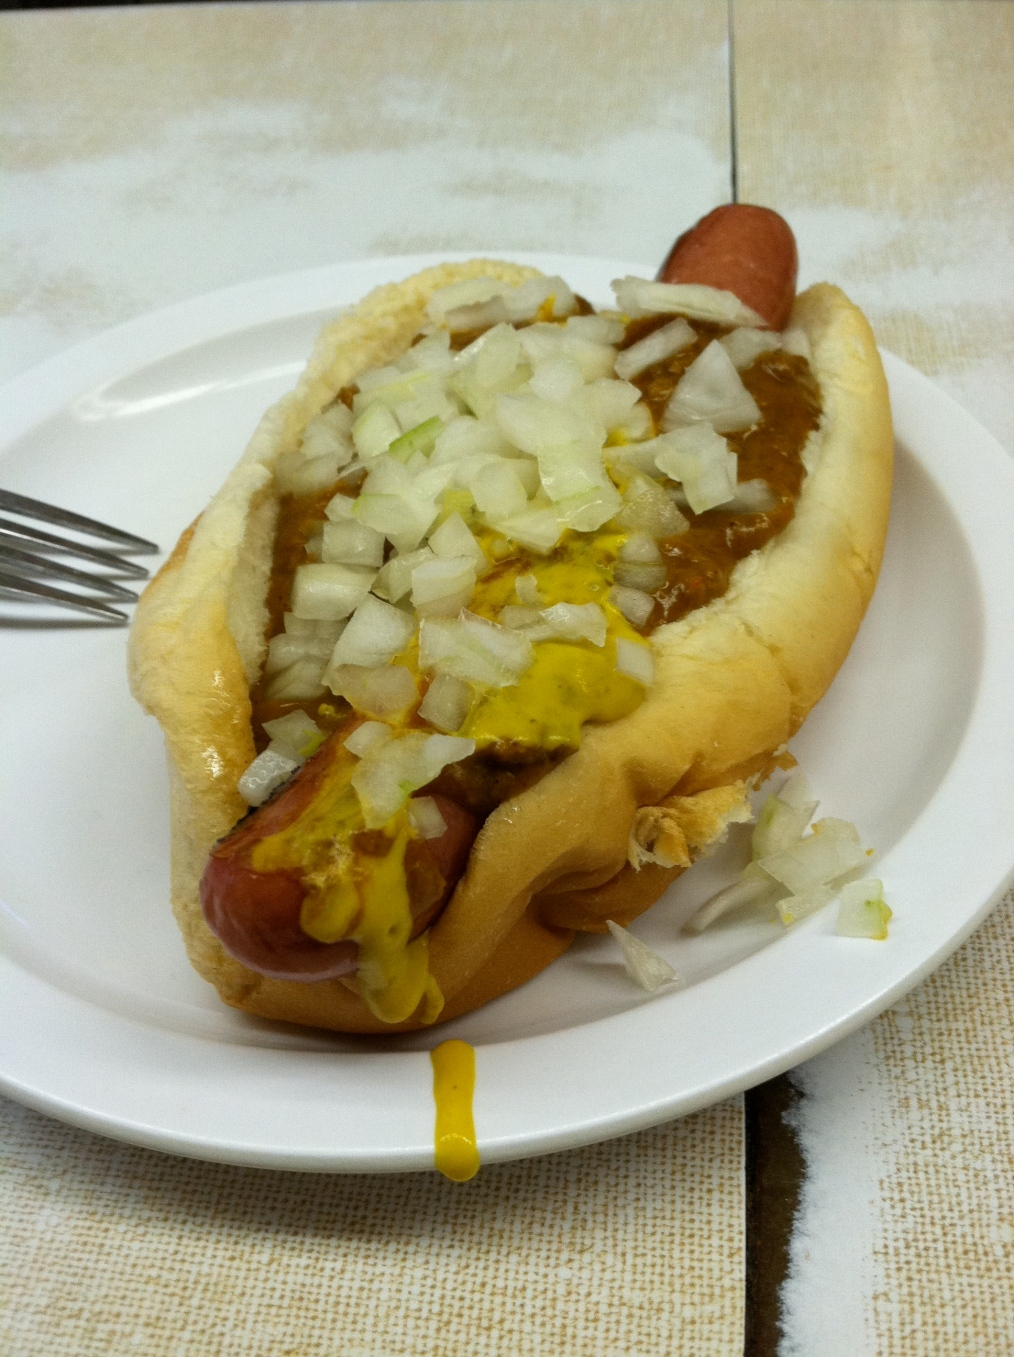 Coney Island Dogs in Detroit